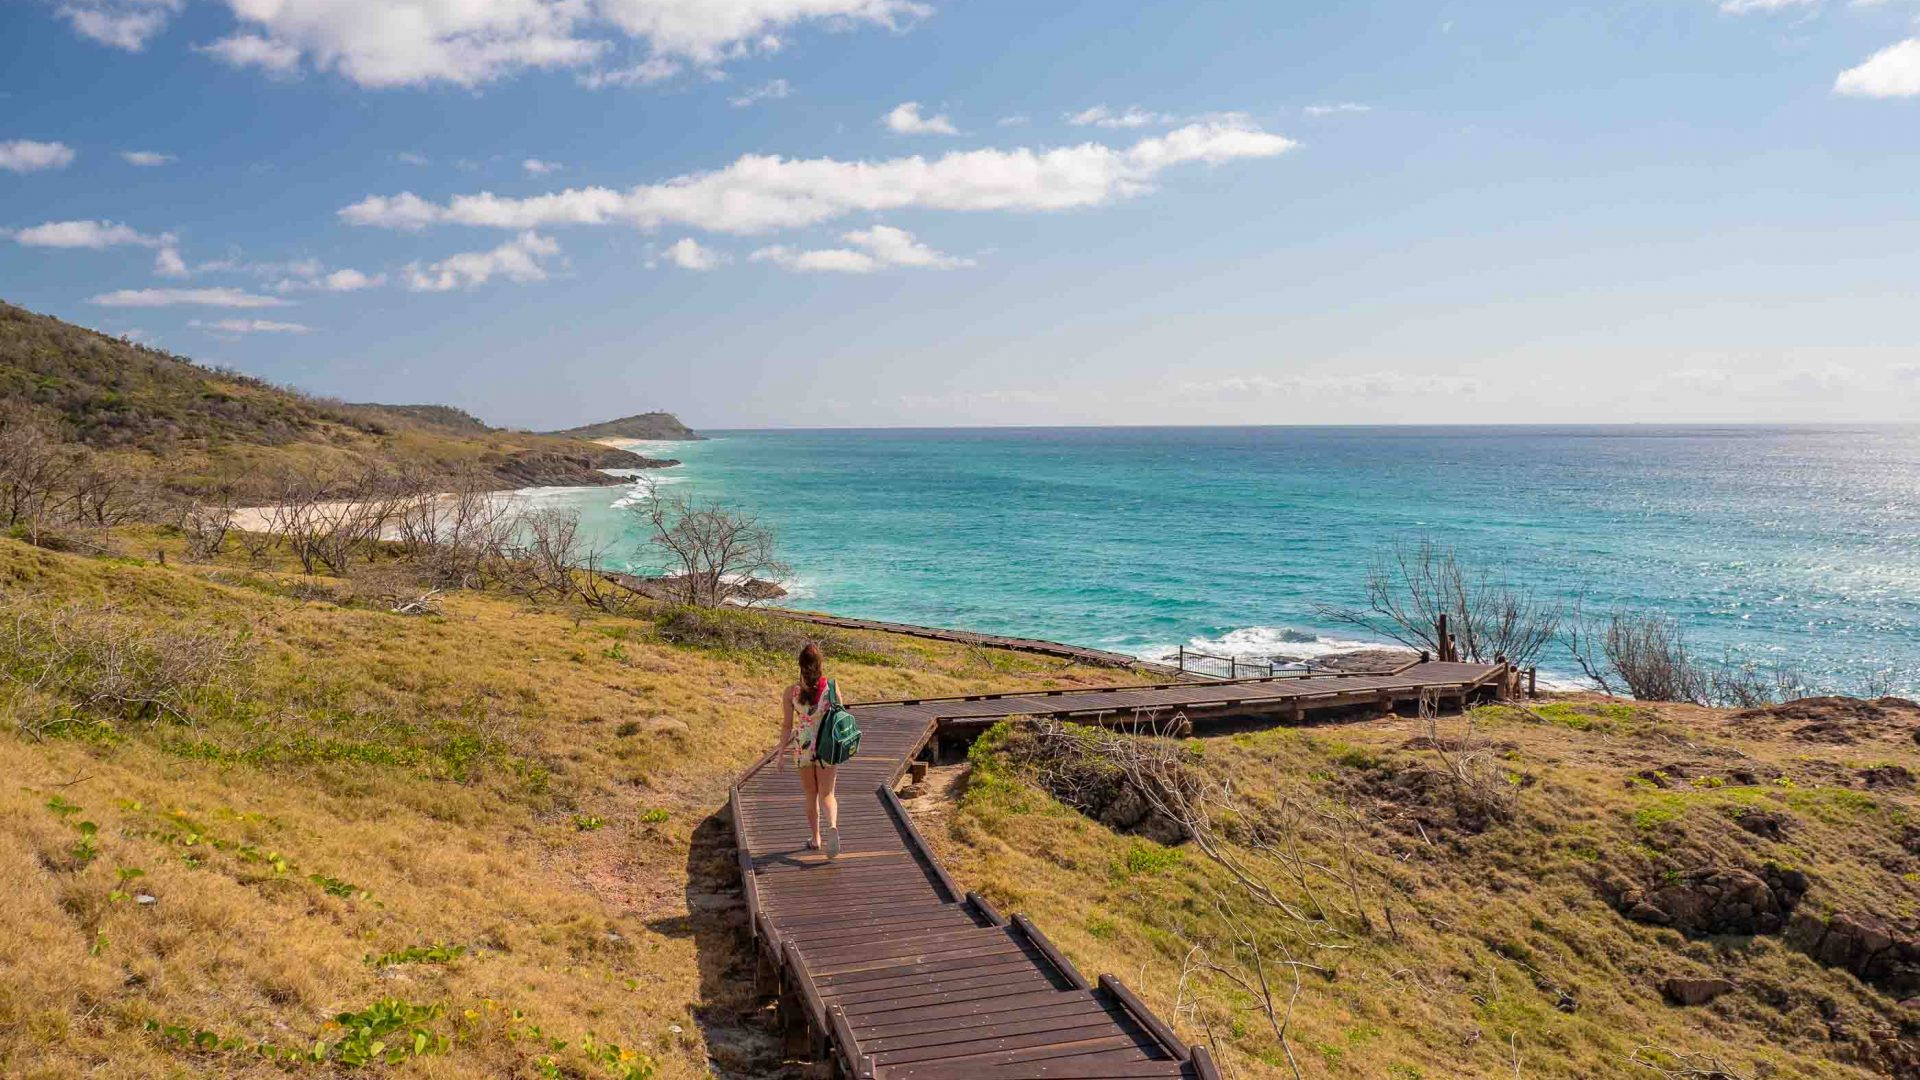 Conservation, adventure and wildlife? Fraser Island is in a league of its own